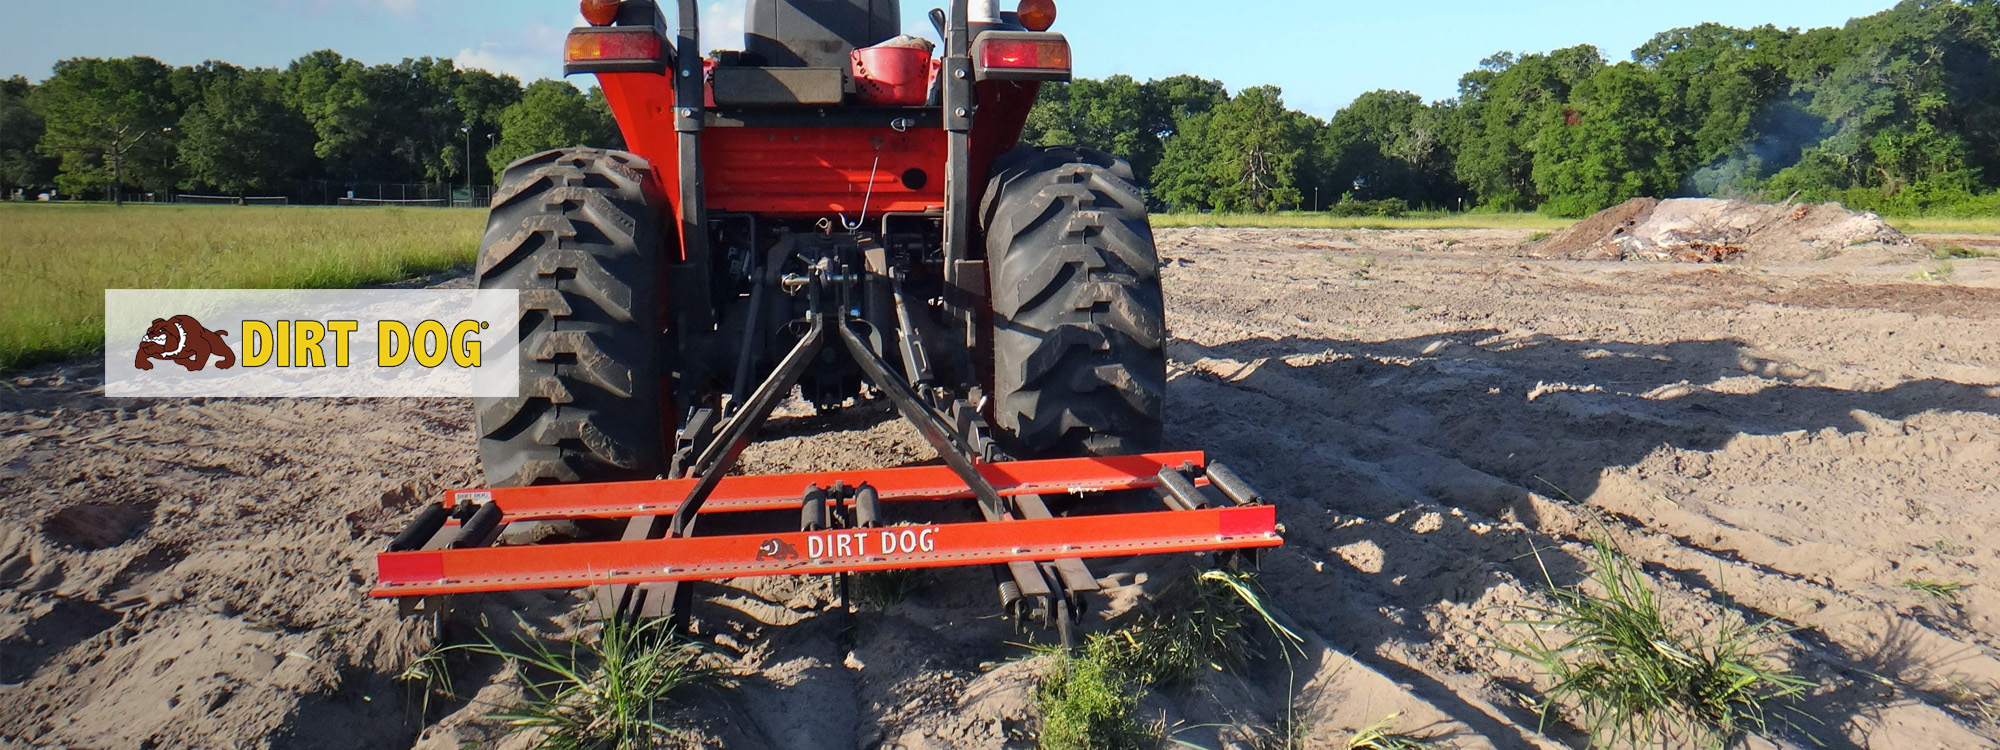 Tractor implements, skid steer attachments, livestock, ranch